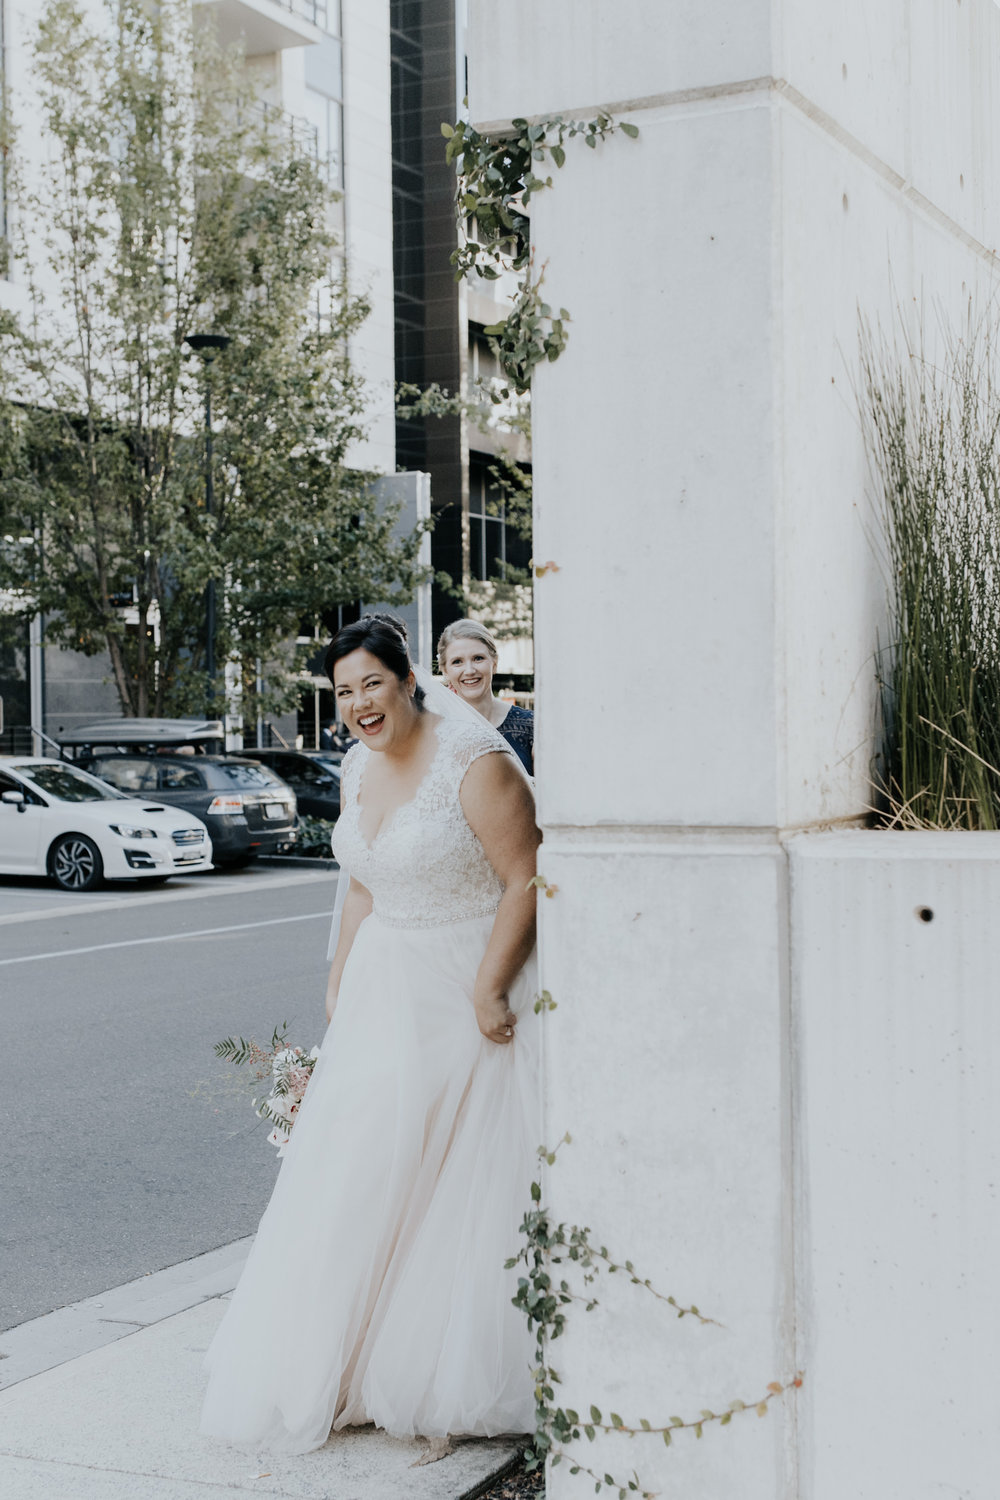 Bride and Groom First Look Hotel Realm Canberra Wedding Photography Jenny Wu Straight No Chaser